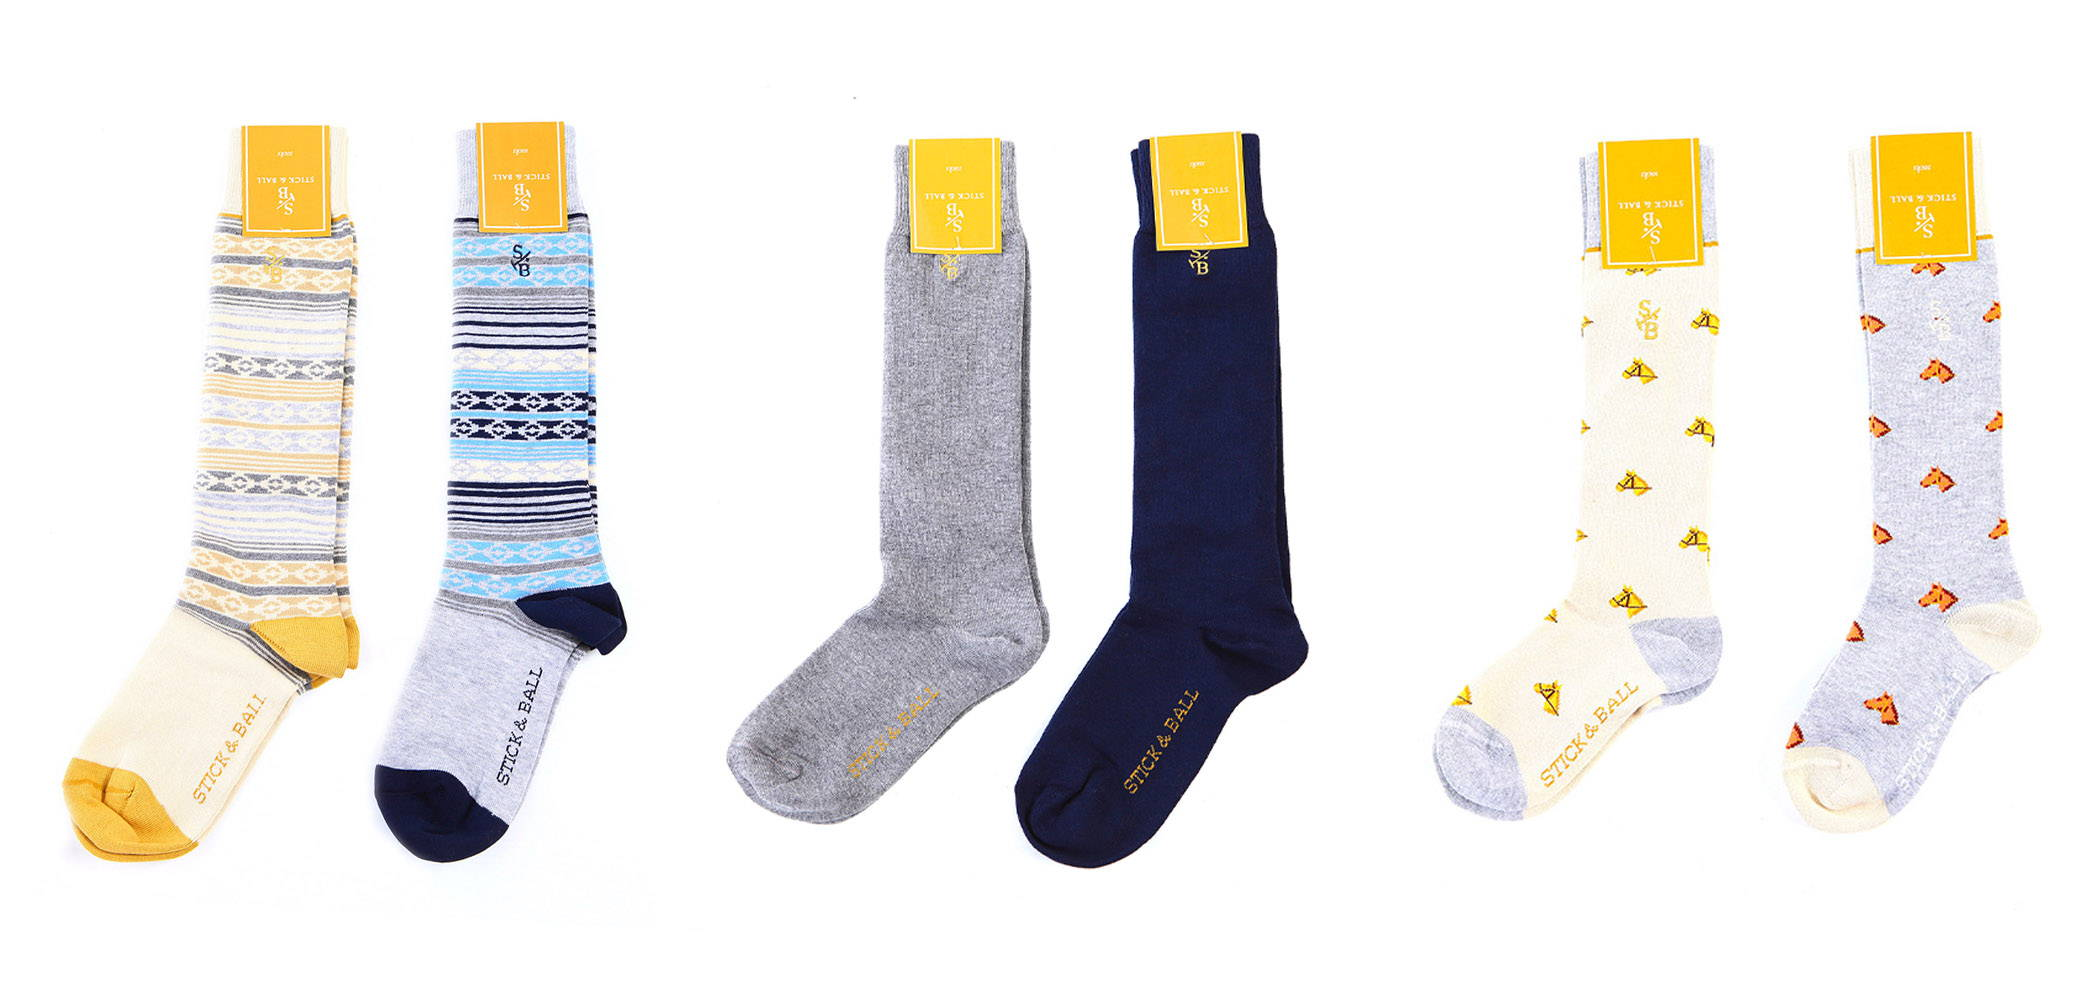 Display of cotton boot socks in solid colors, pampa design and equestrian-inspired design - Stick & Ball